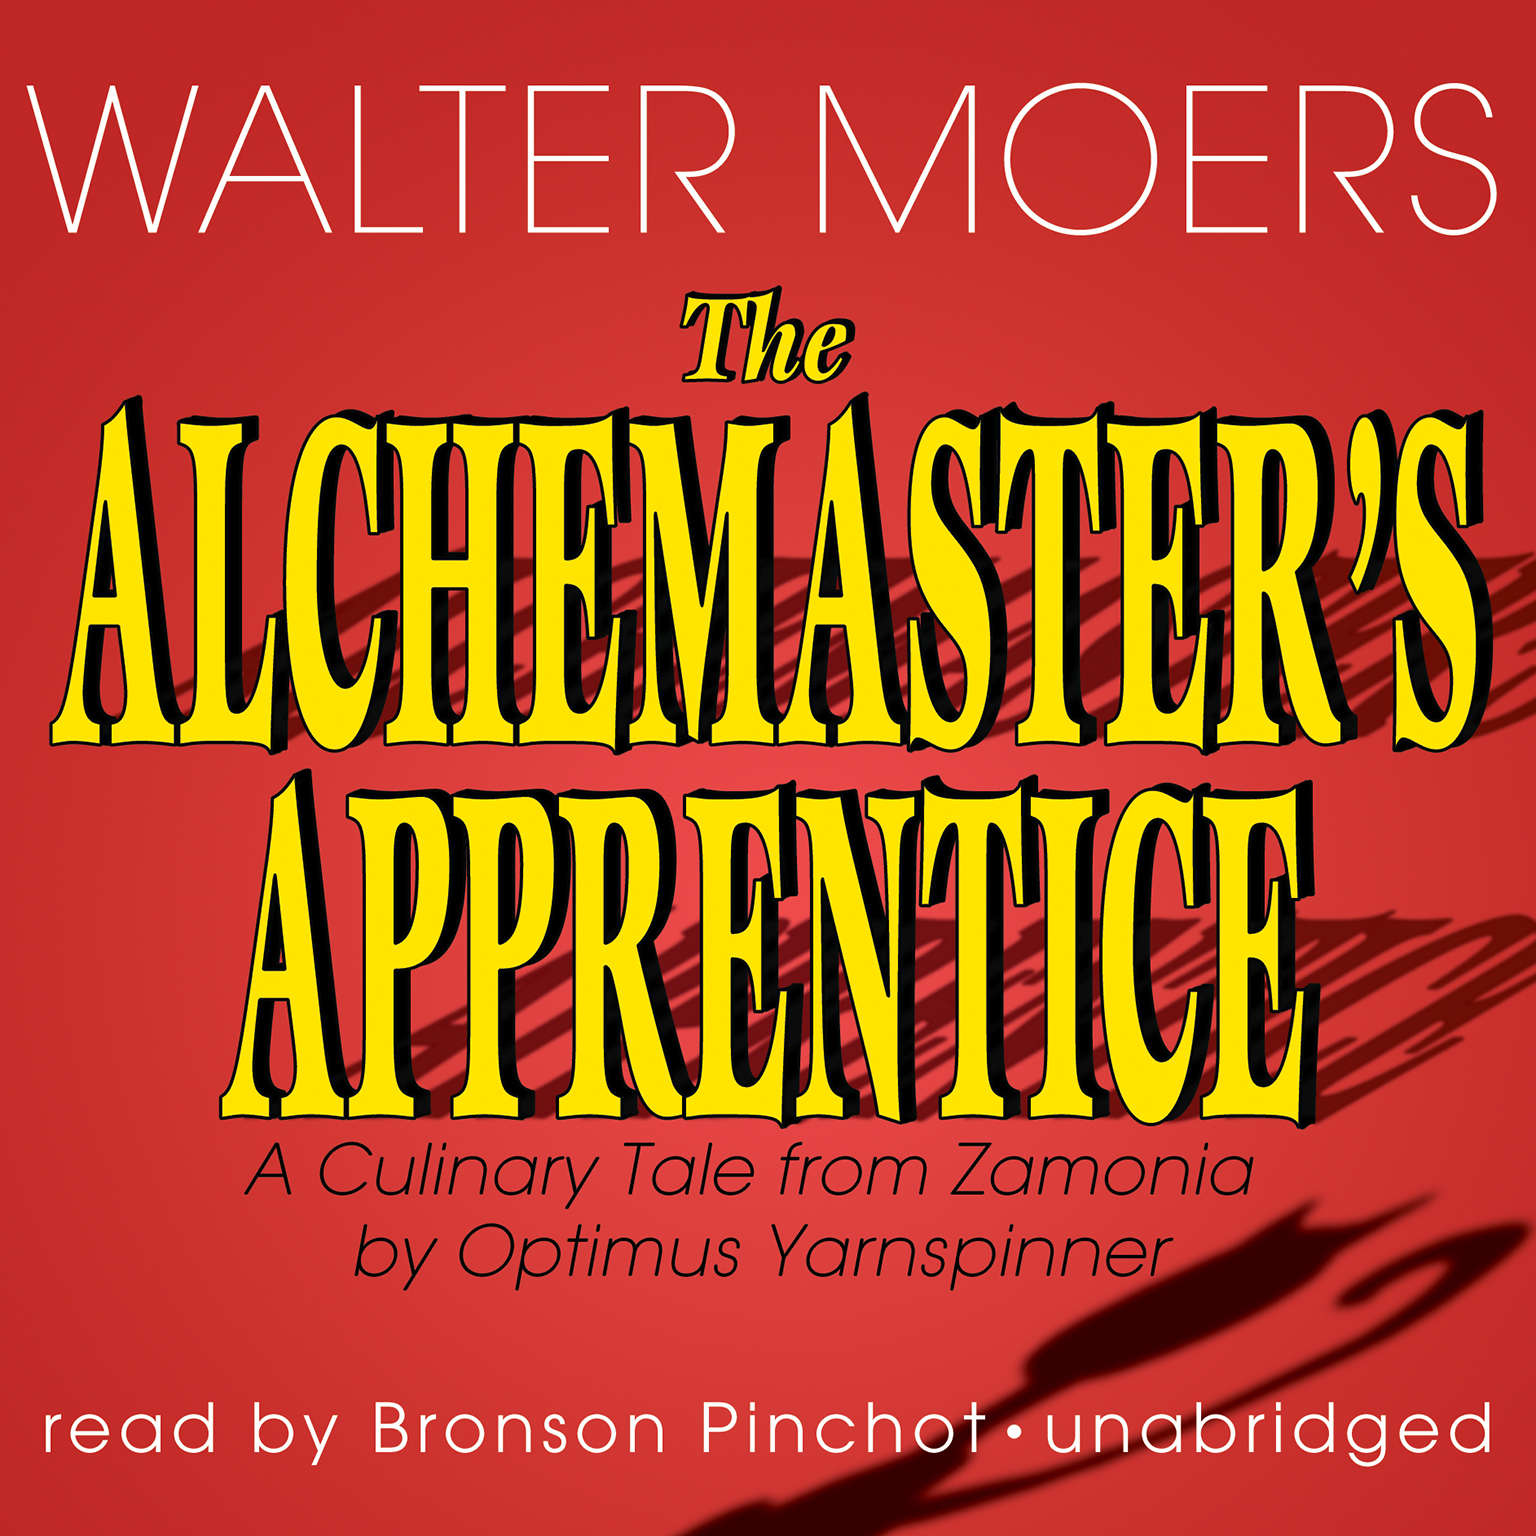 Printable The Alchemaster's Apprentice: A Culinary Tale from Zamonia by Optimus Yarnspinner Audiobook Cover Art